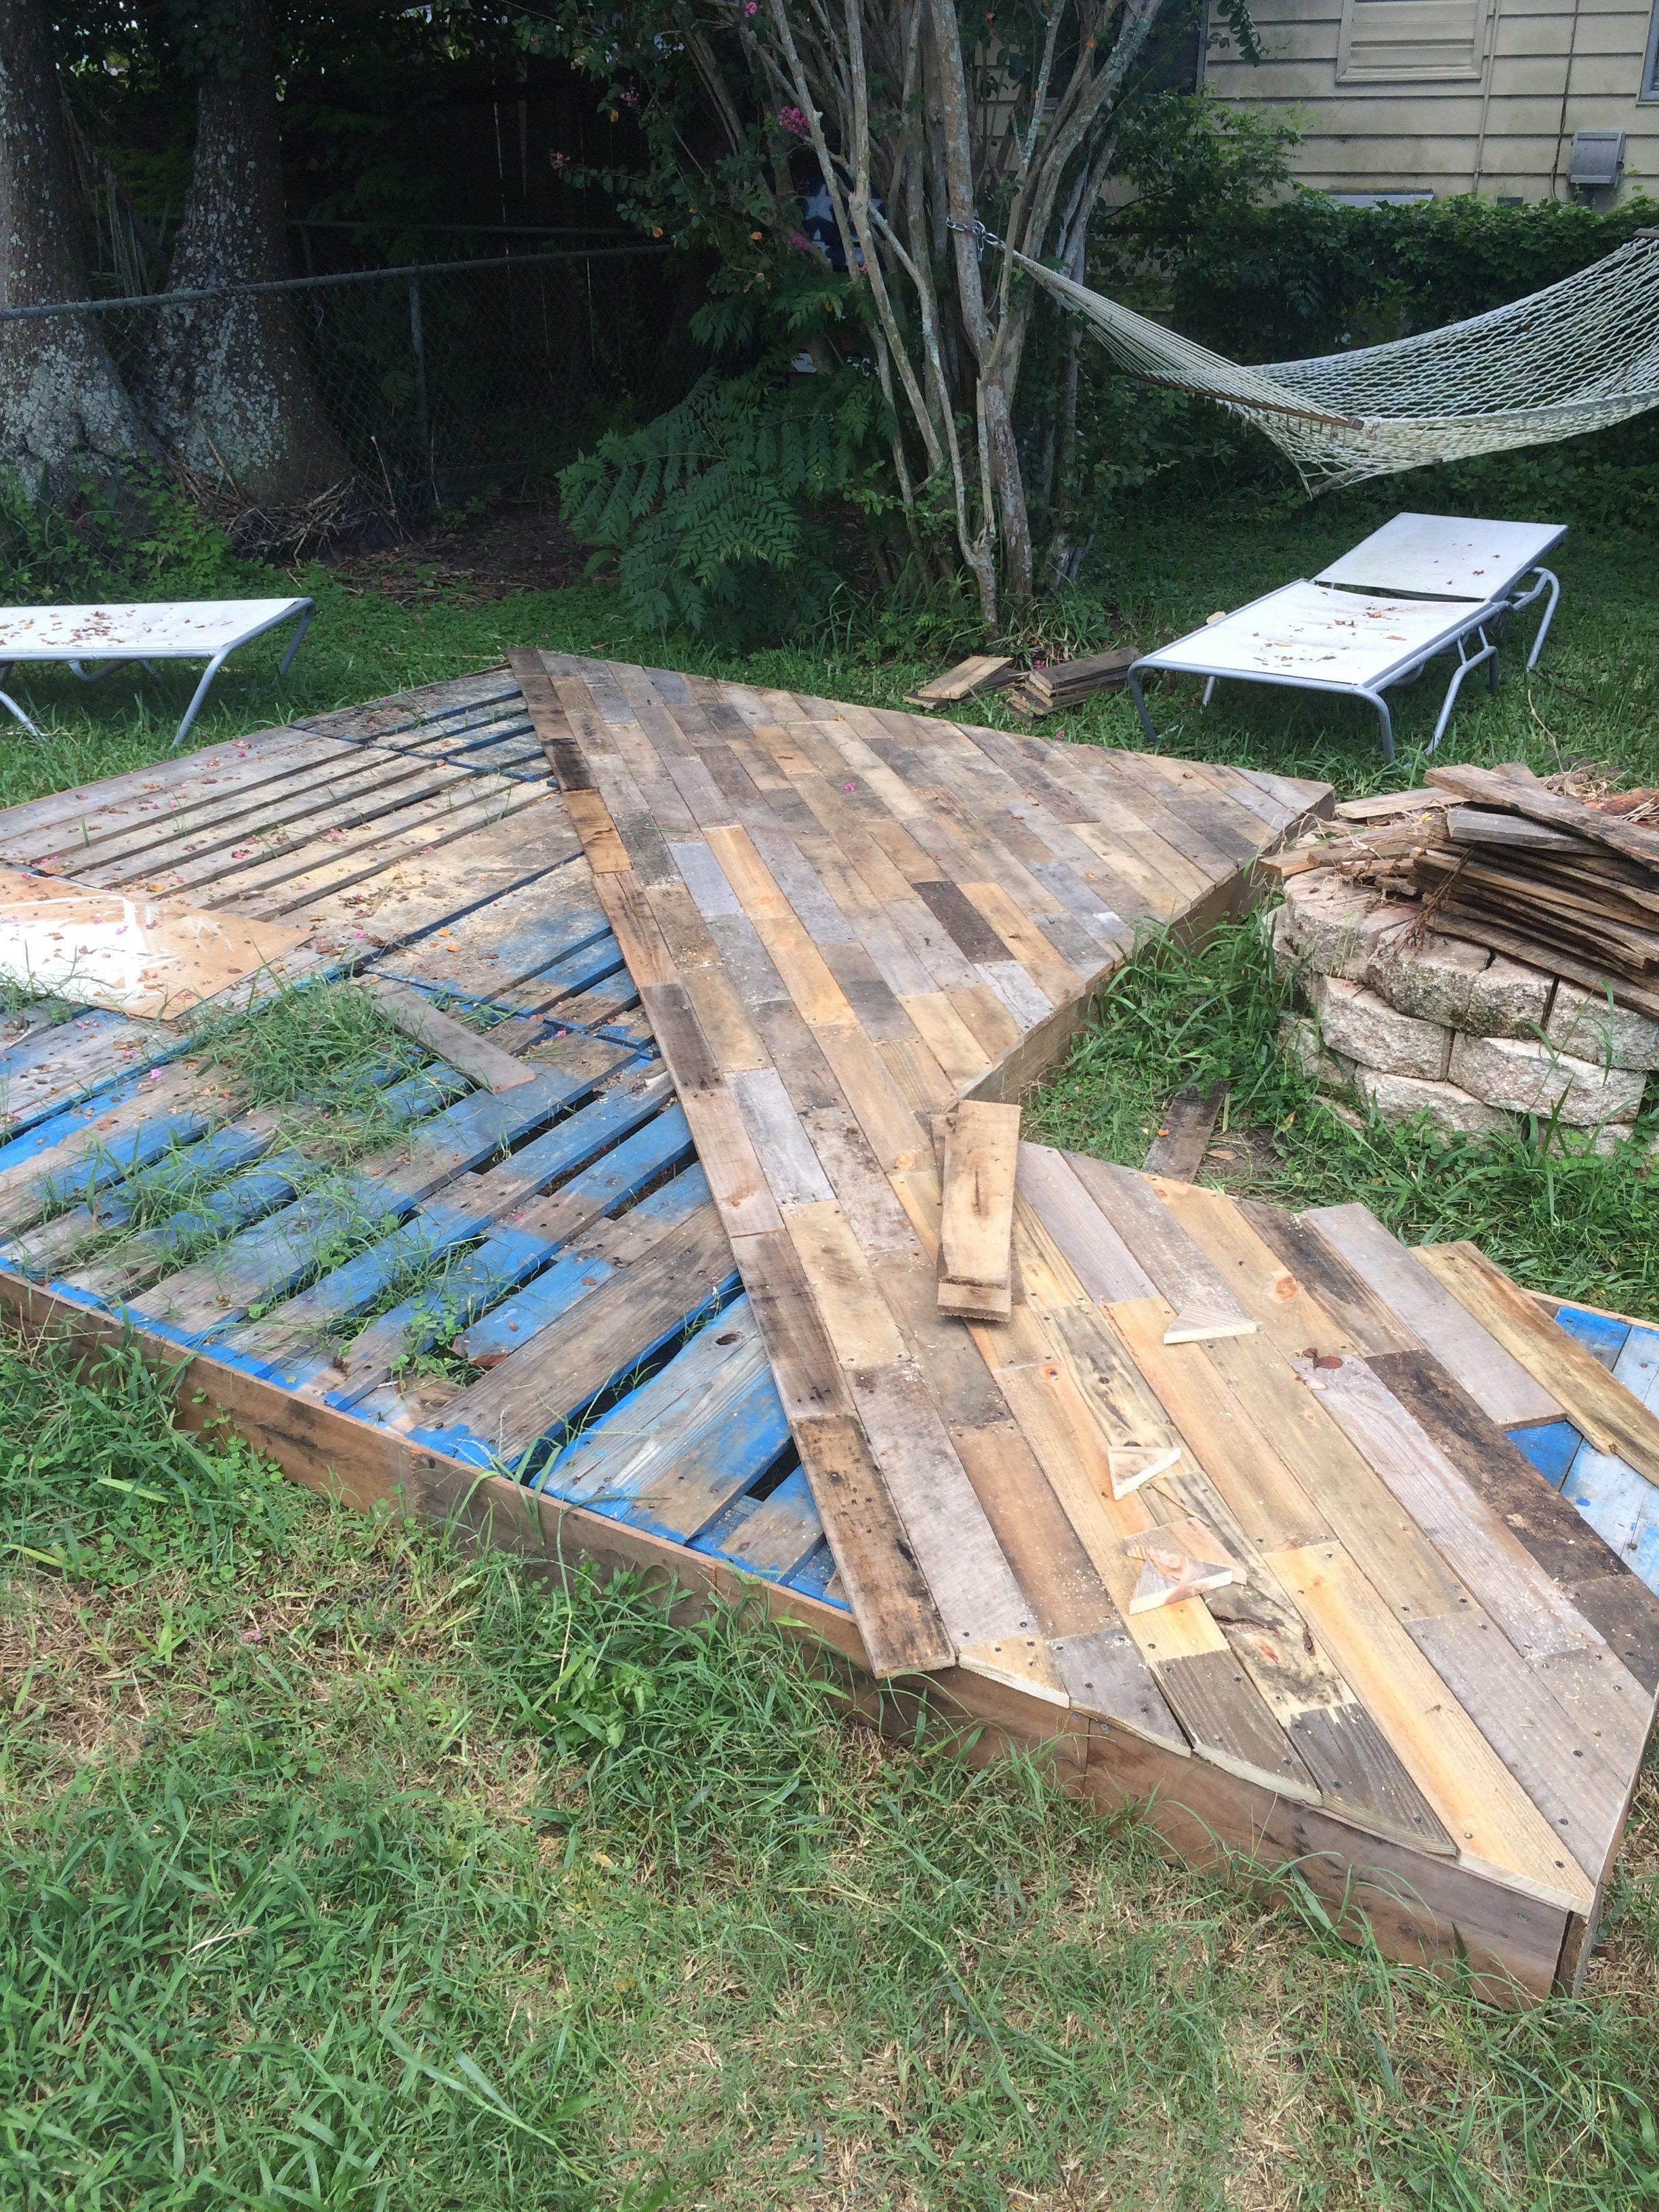 Patio Deck Of 25 Wooden Pallets Backyard Reno